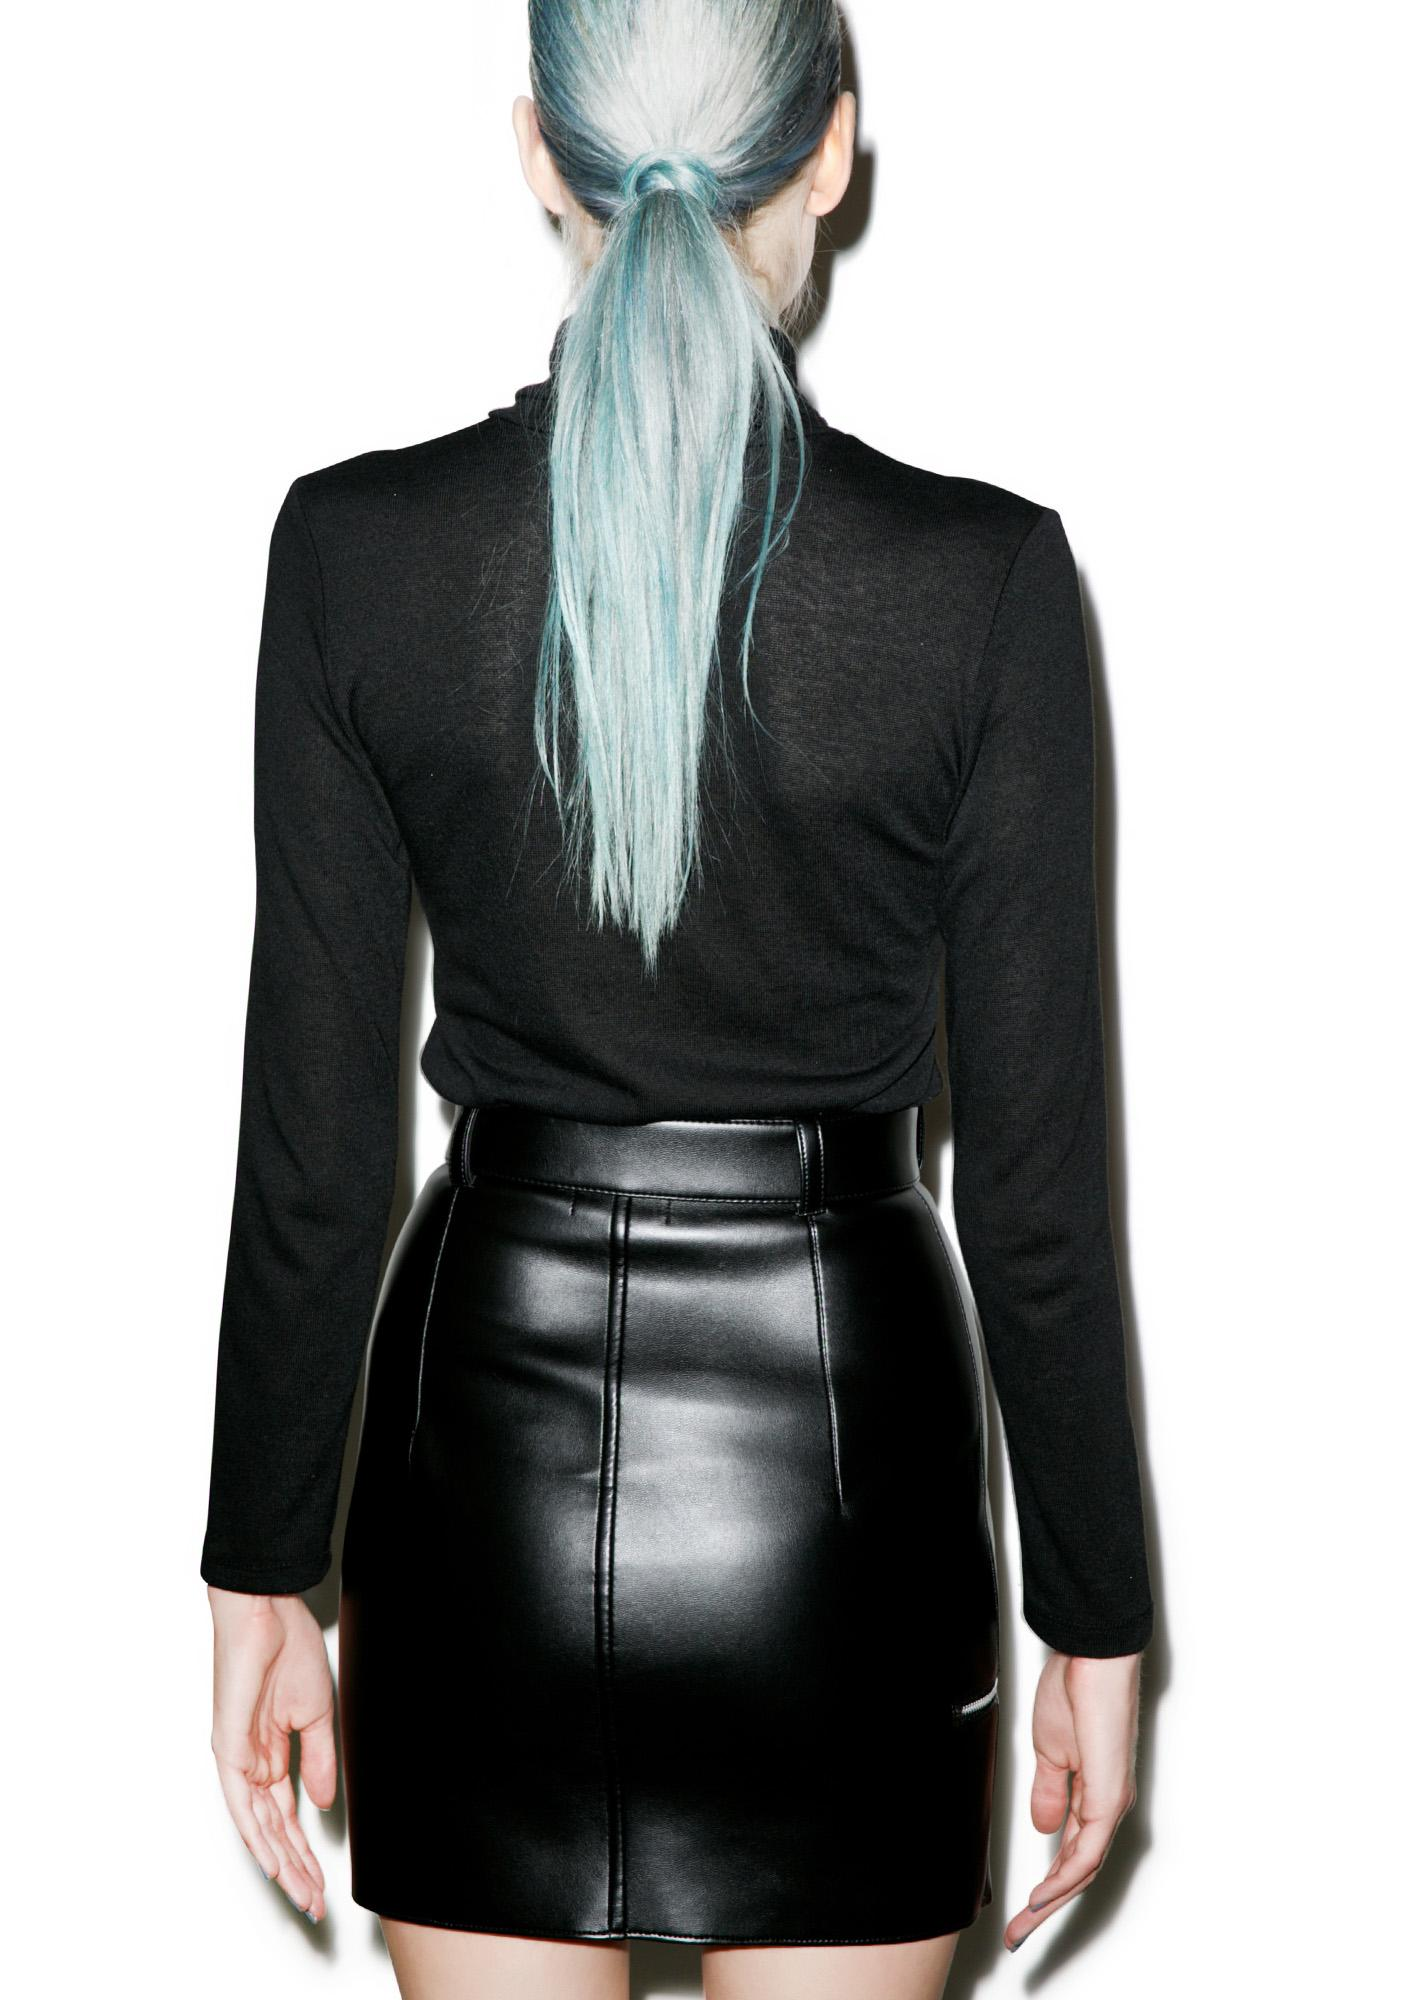 Matter of Black Bad Ass Vegan Leather Skirt